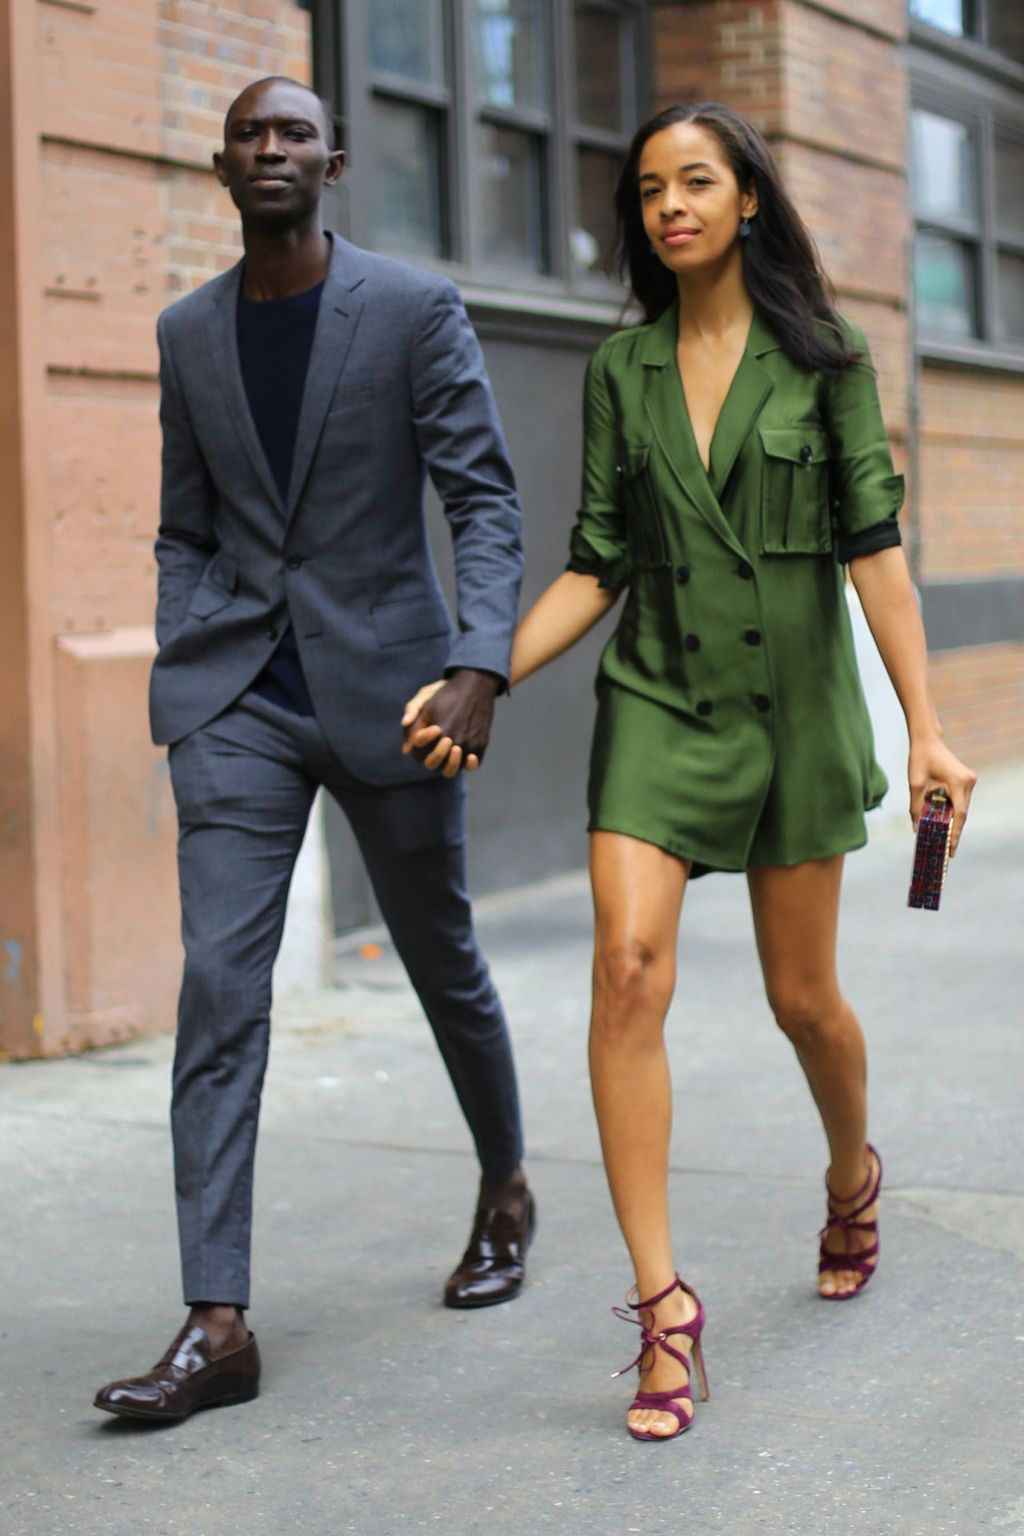 35 Stylish Street Style Outfit To Inspire Yourself #mensstreetstylesummer